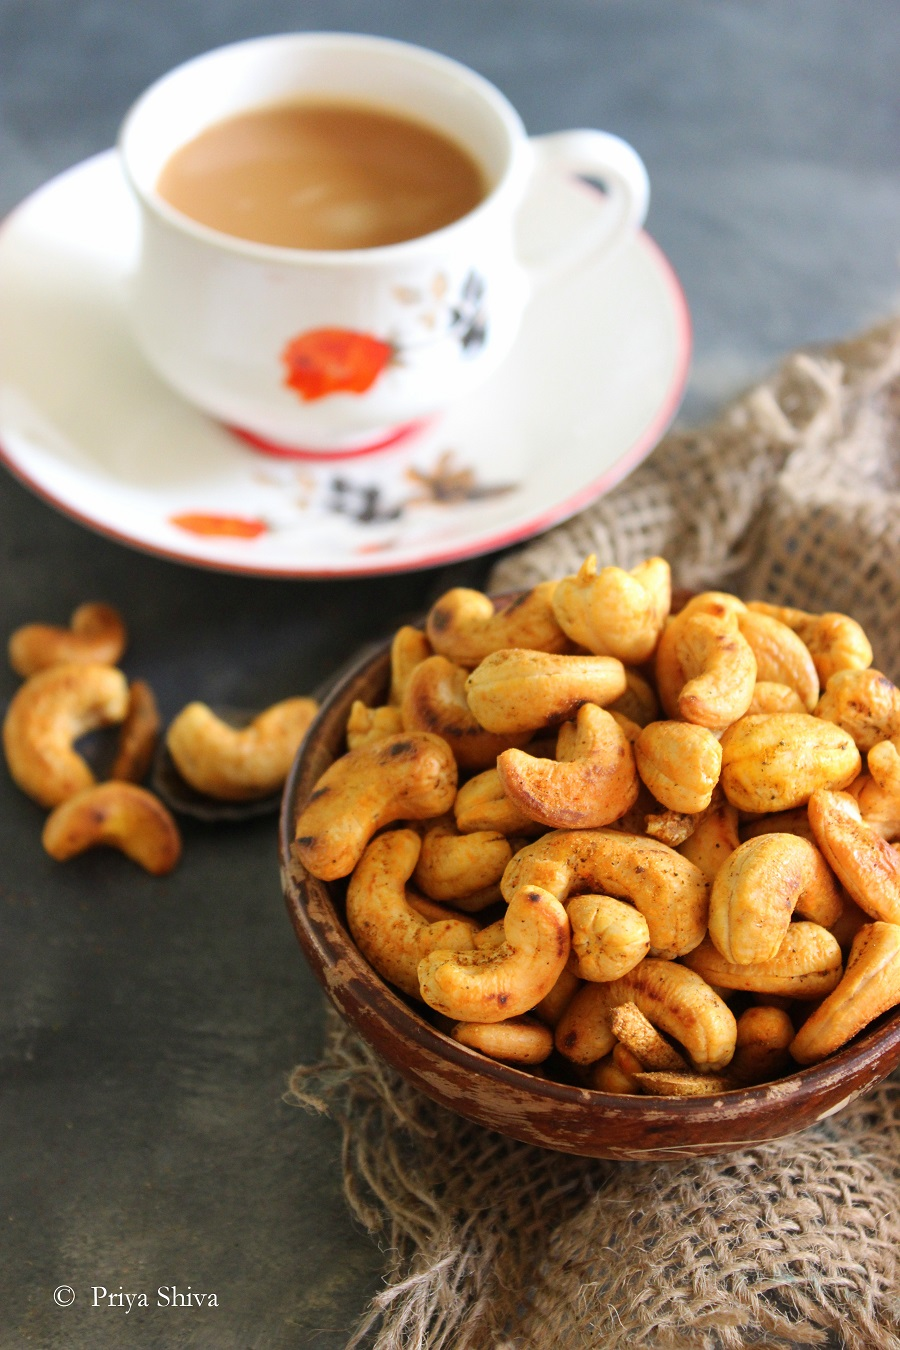 Masala Kaju - Spicy Roasted Cashew